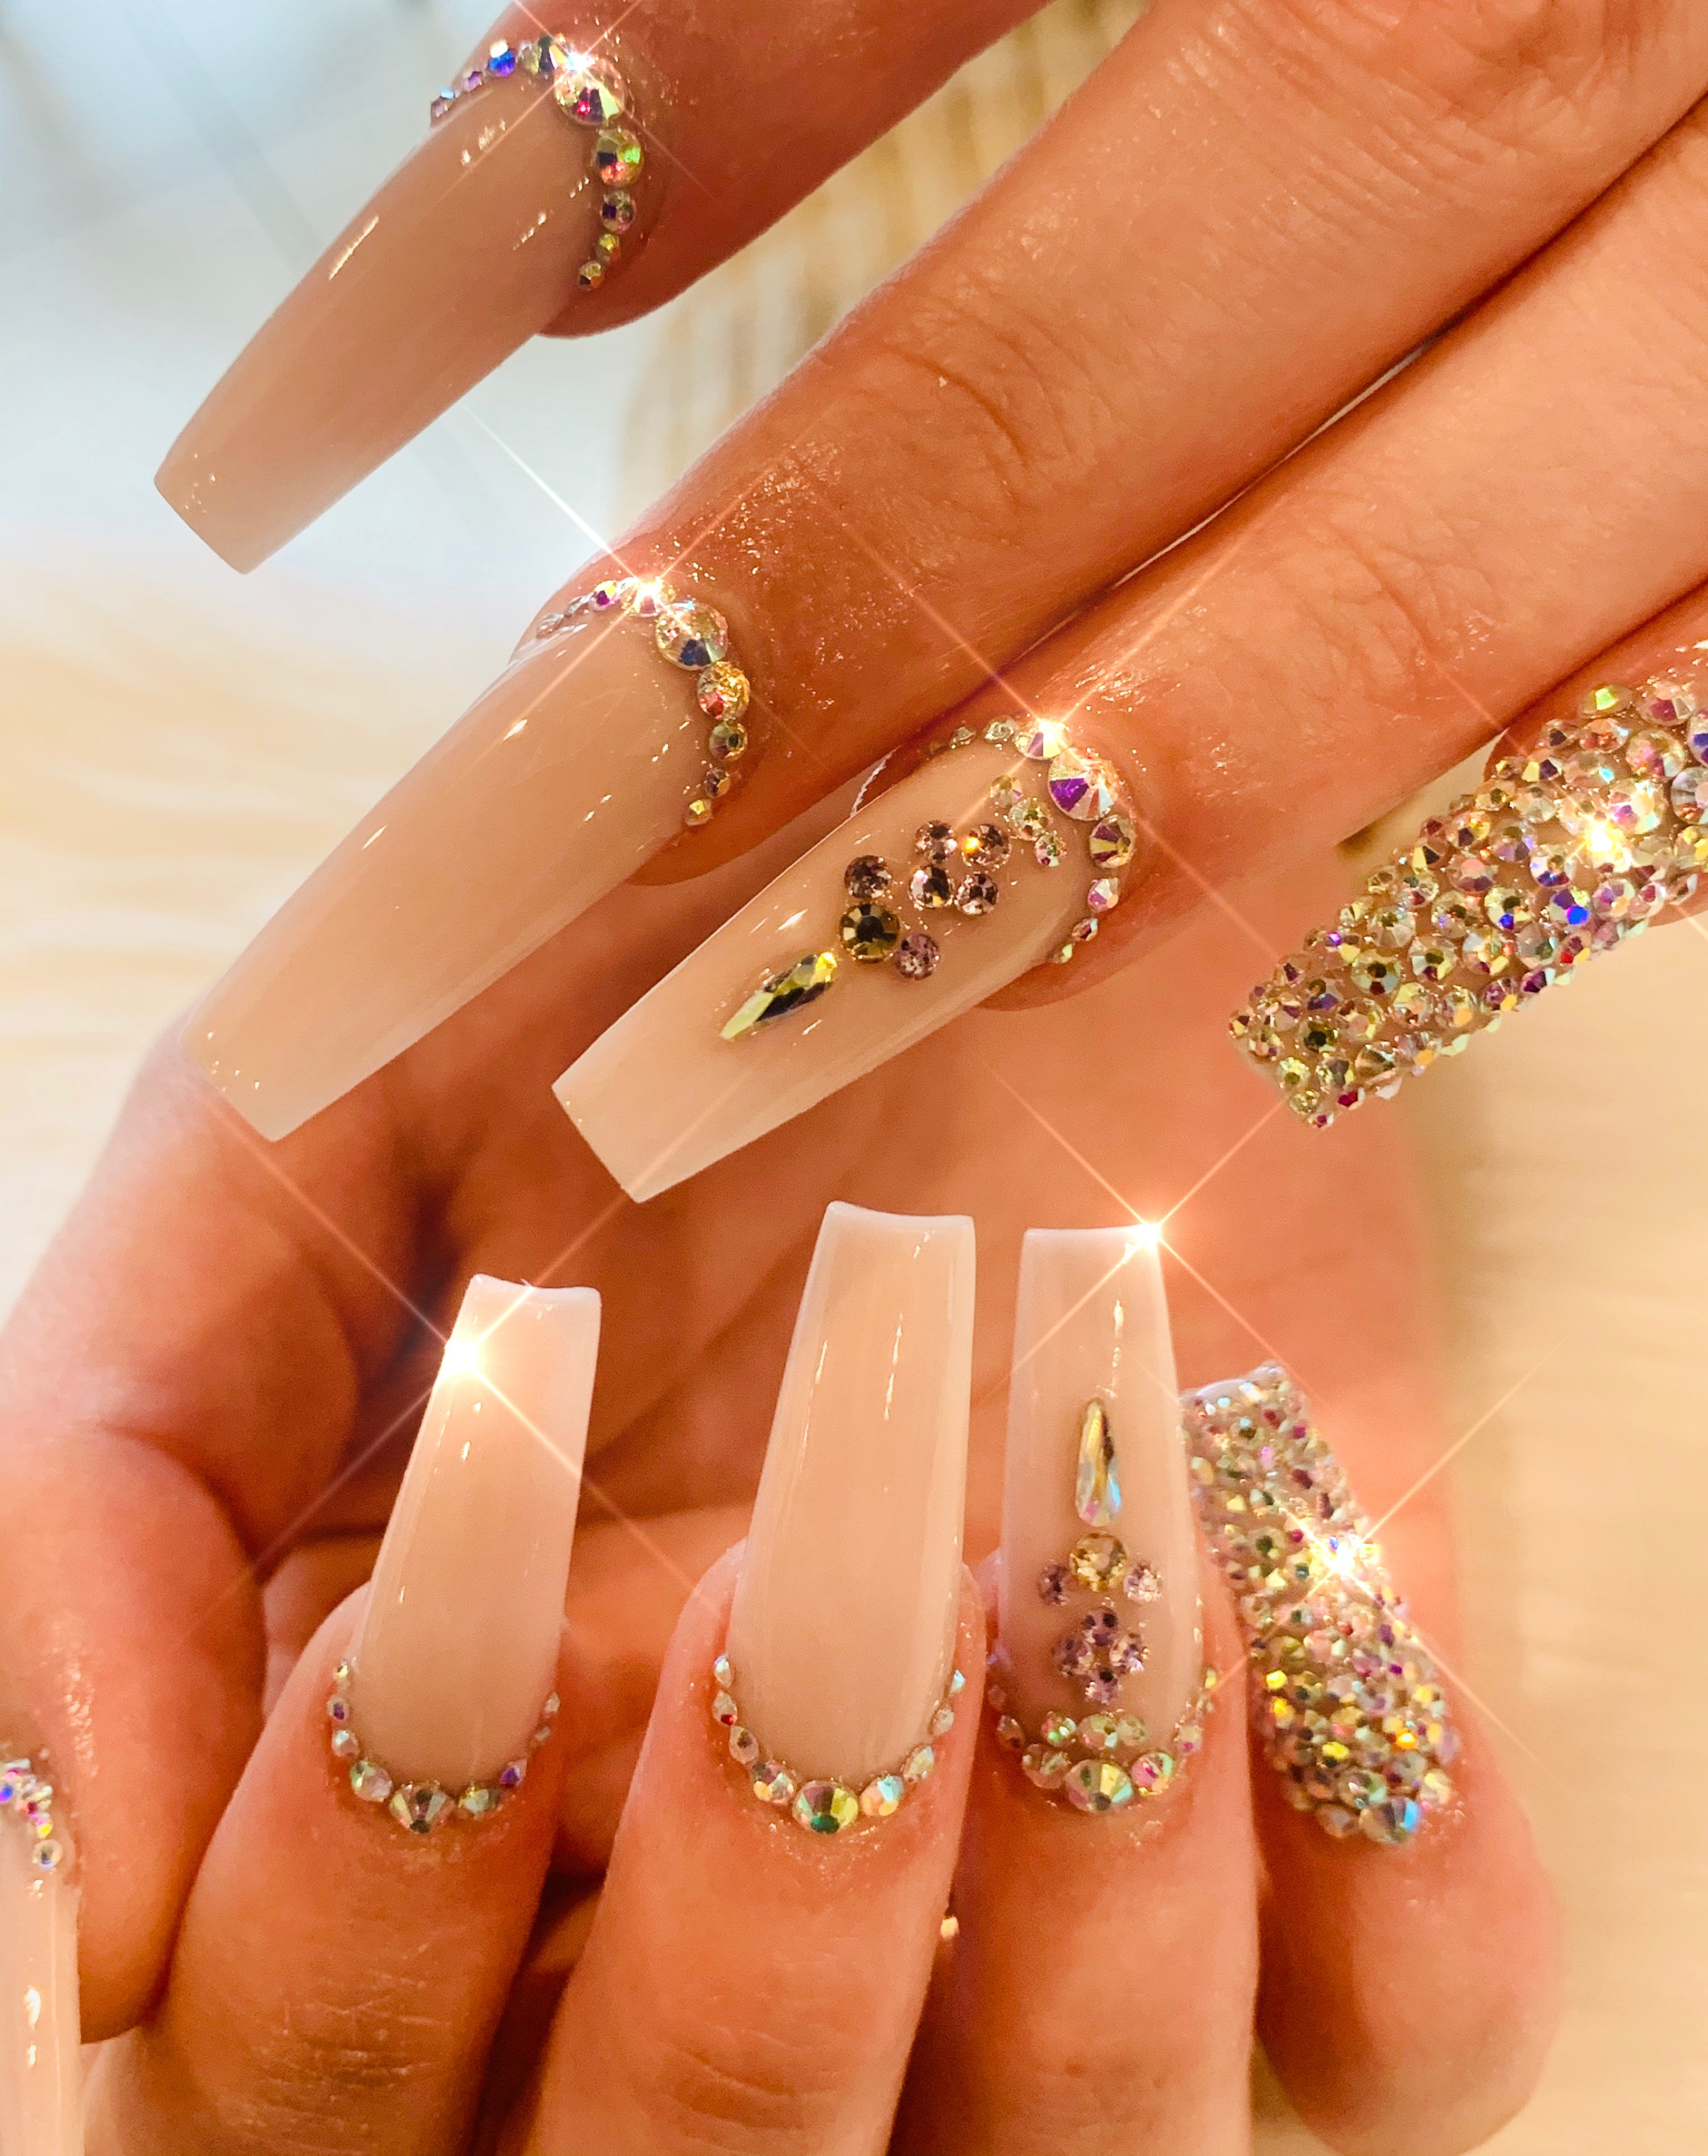 Nail Creations Tumwater Manicure Pedicure Nail Design Services